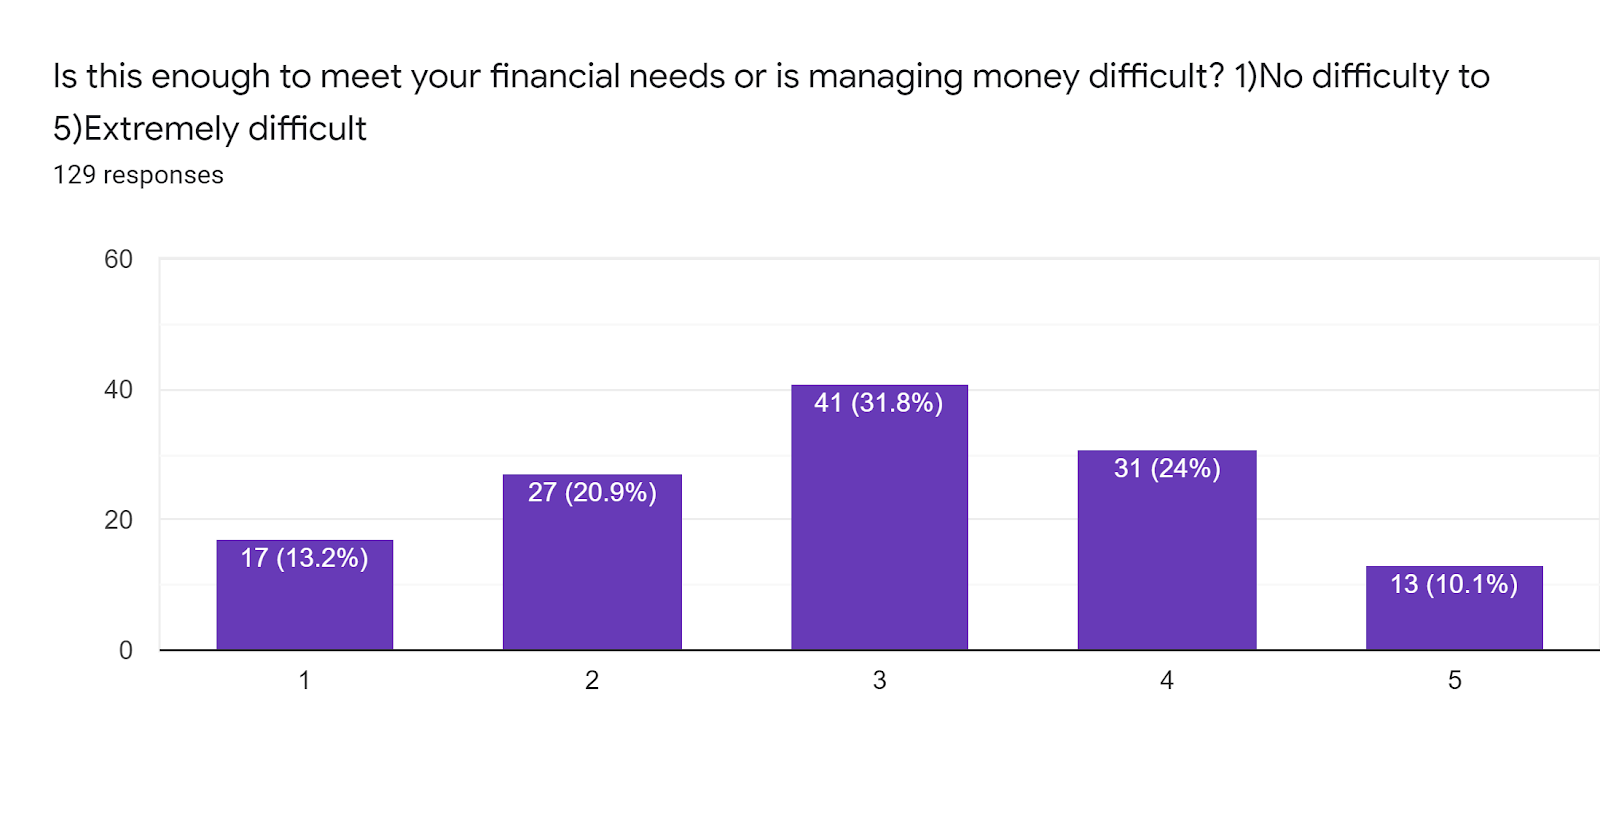 Forms response chart. Question title: Is this enough to meet your financial needs or is managing money difficult? 1)No difficulty to 5)Extremely difficult. Number of responses: 129 responses.